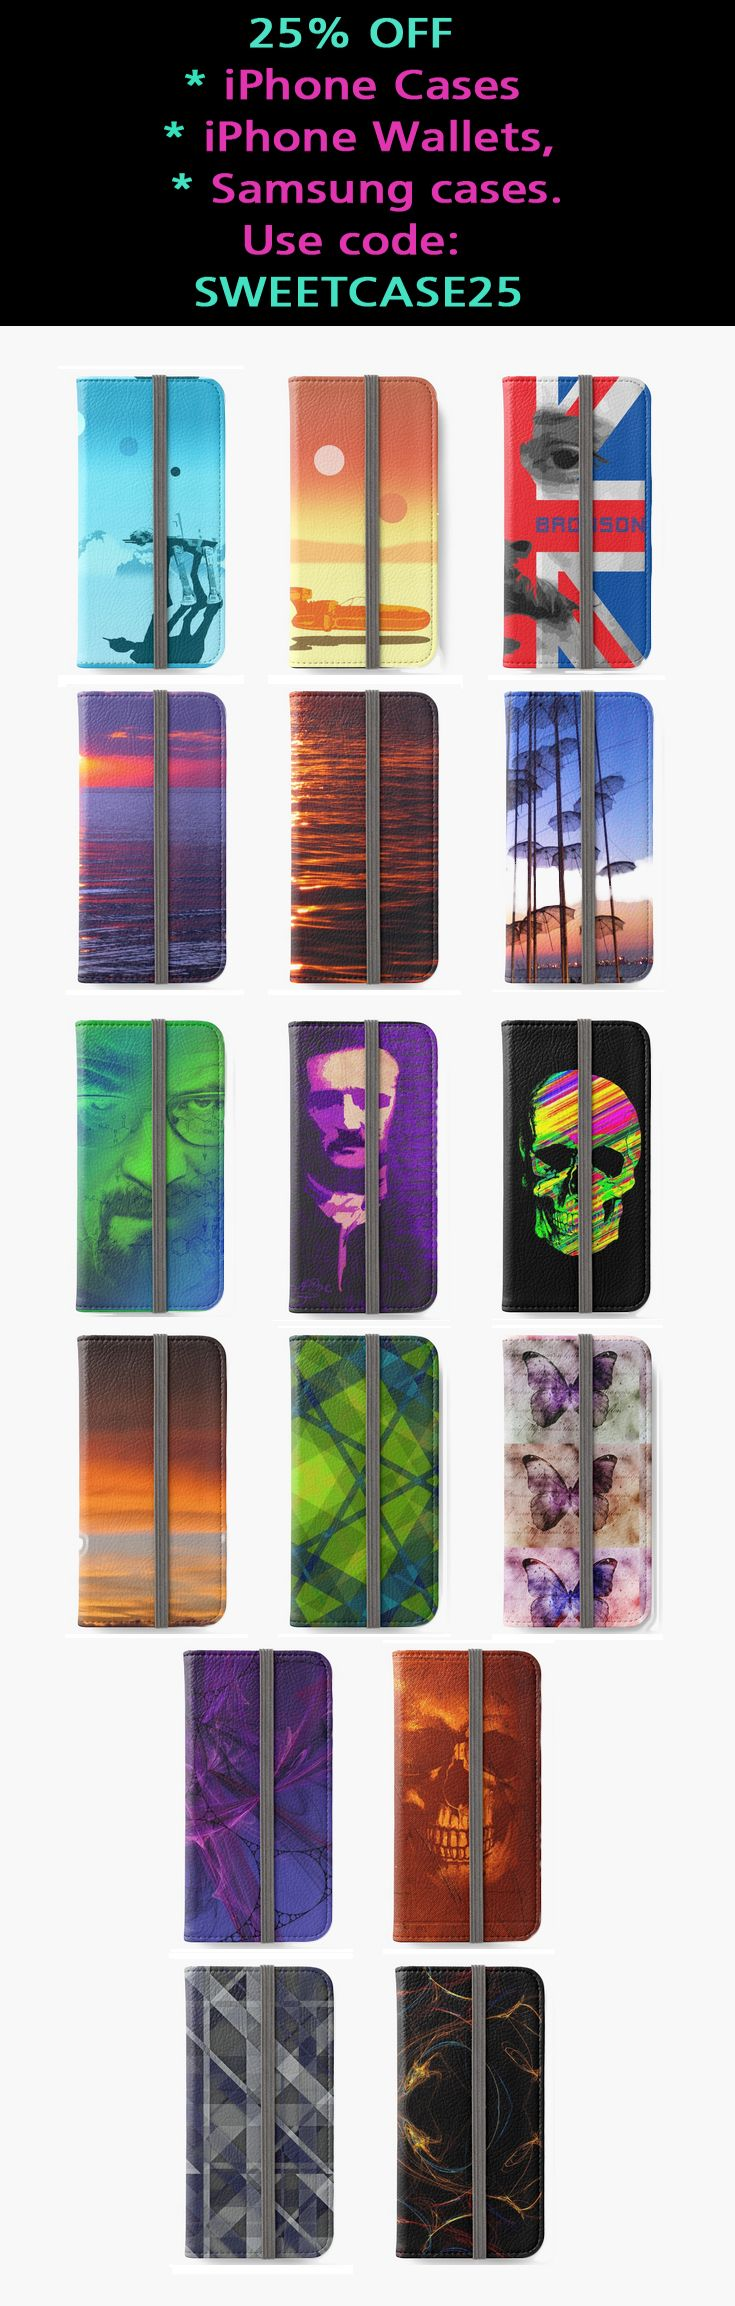 25% OFF iPhone Wallets and Samsung cases. Use code: SWEETCASE25. #sales #discount #save #septembersales #iphonewallet #iphone #iphonecase #style #shopping #onlineshopping #art #movies #family #redbubble #giftsforher #giftsforhim #gifts #geek #nerd